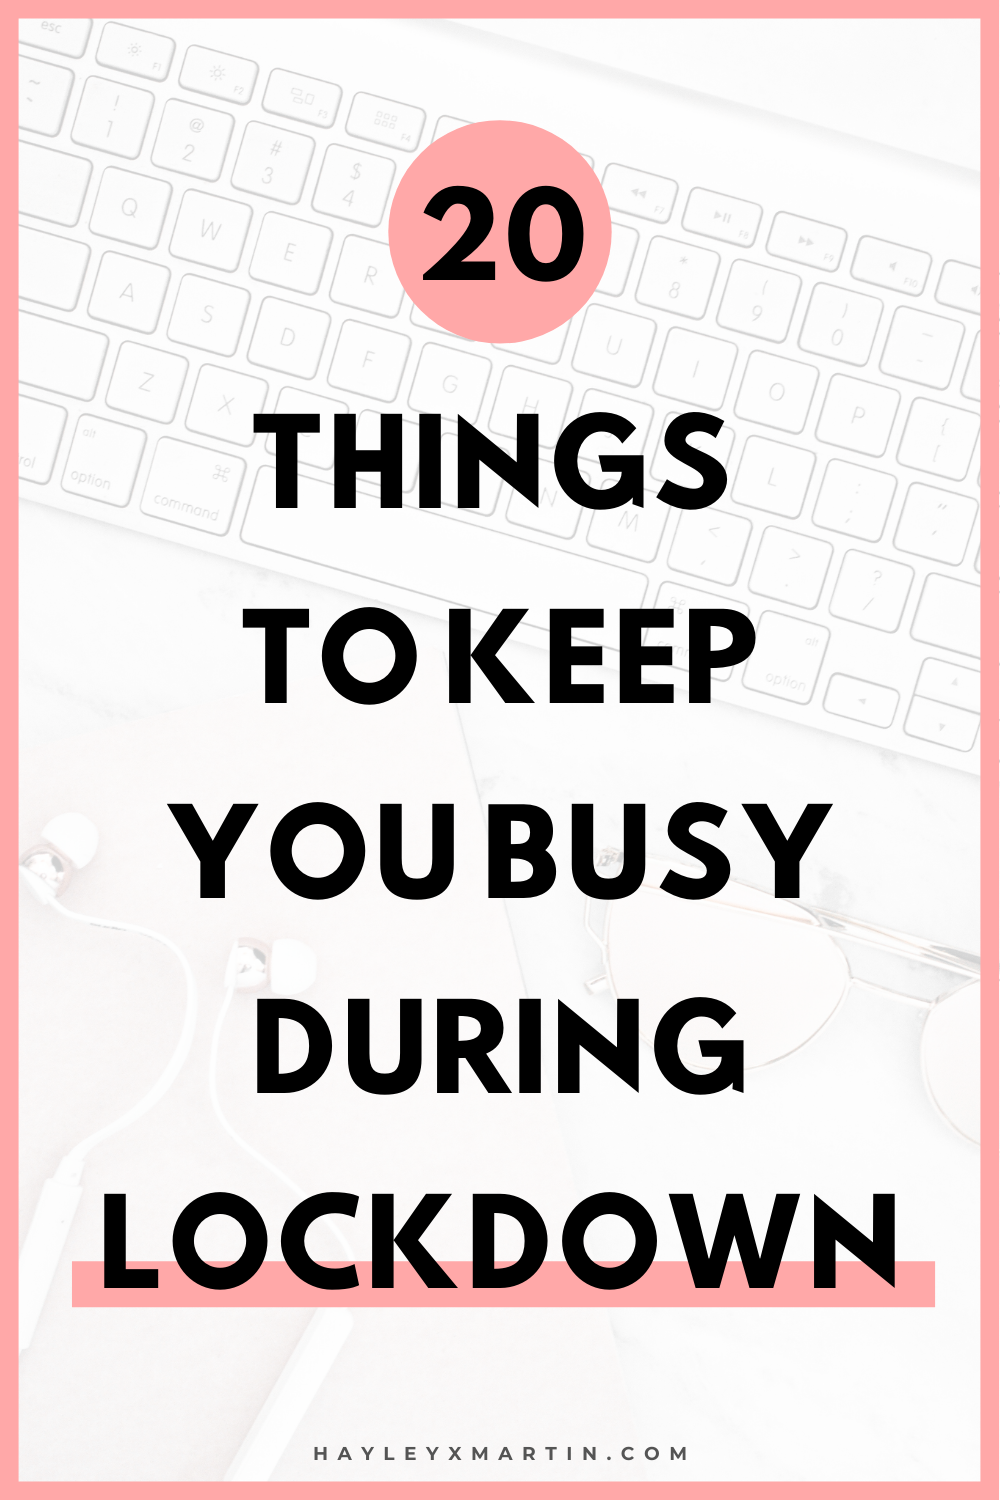 20 THINGS TO KEEP YOU BUSY DURING LOCKDOWN | HAYLEYXMARTIN.COM